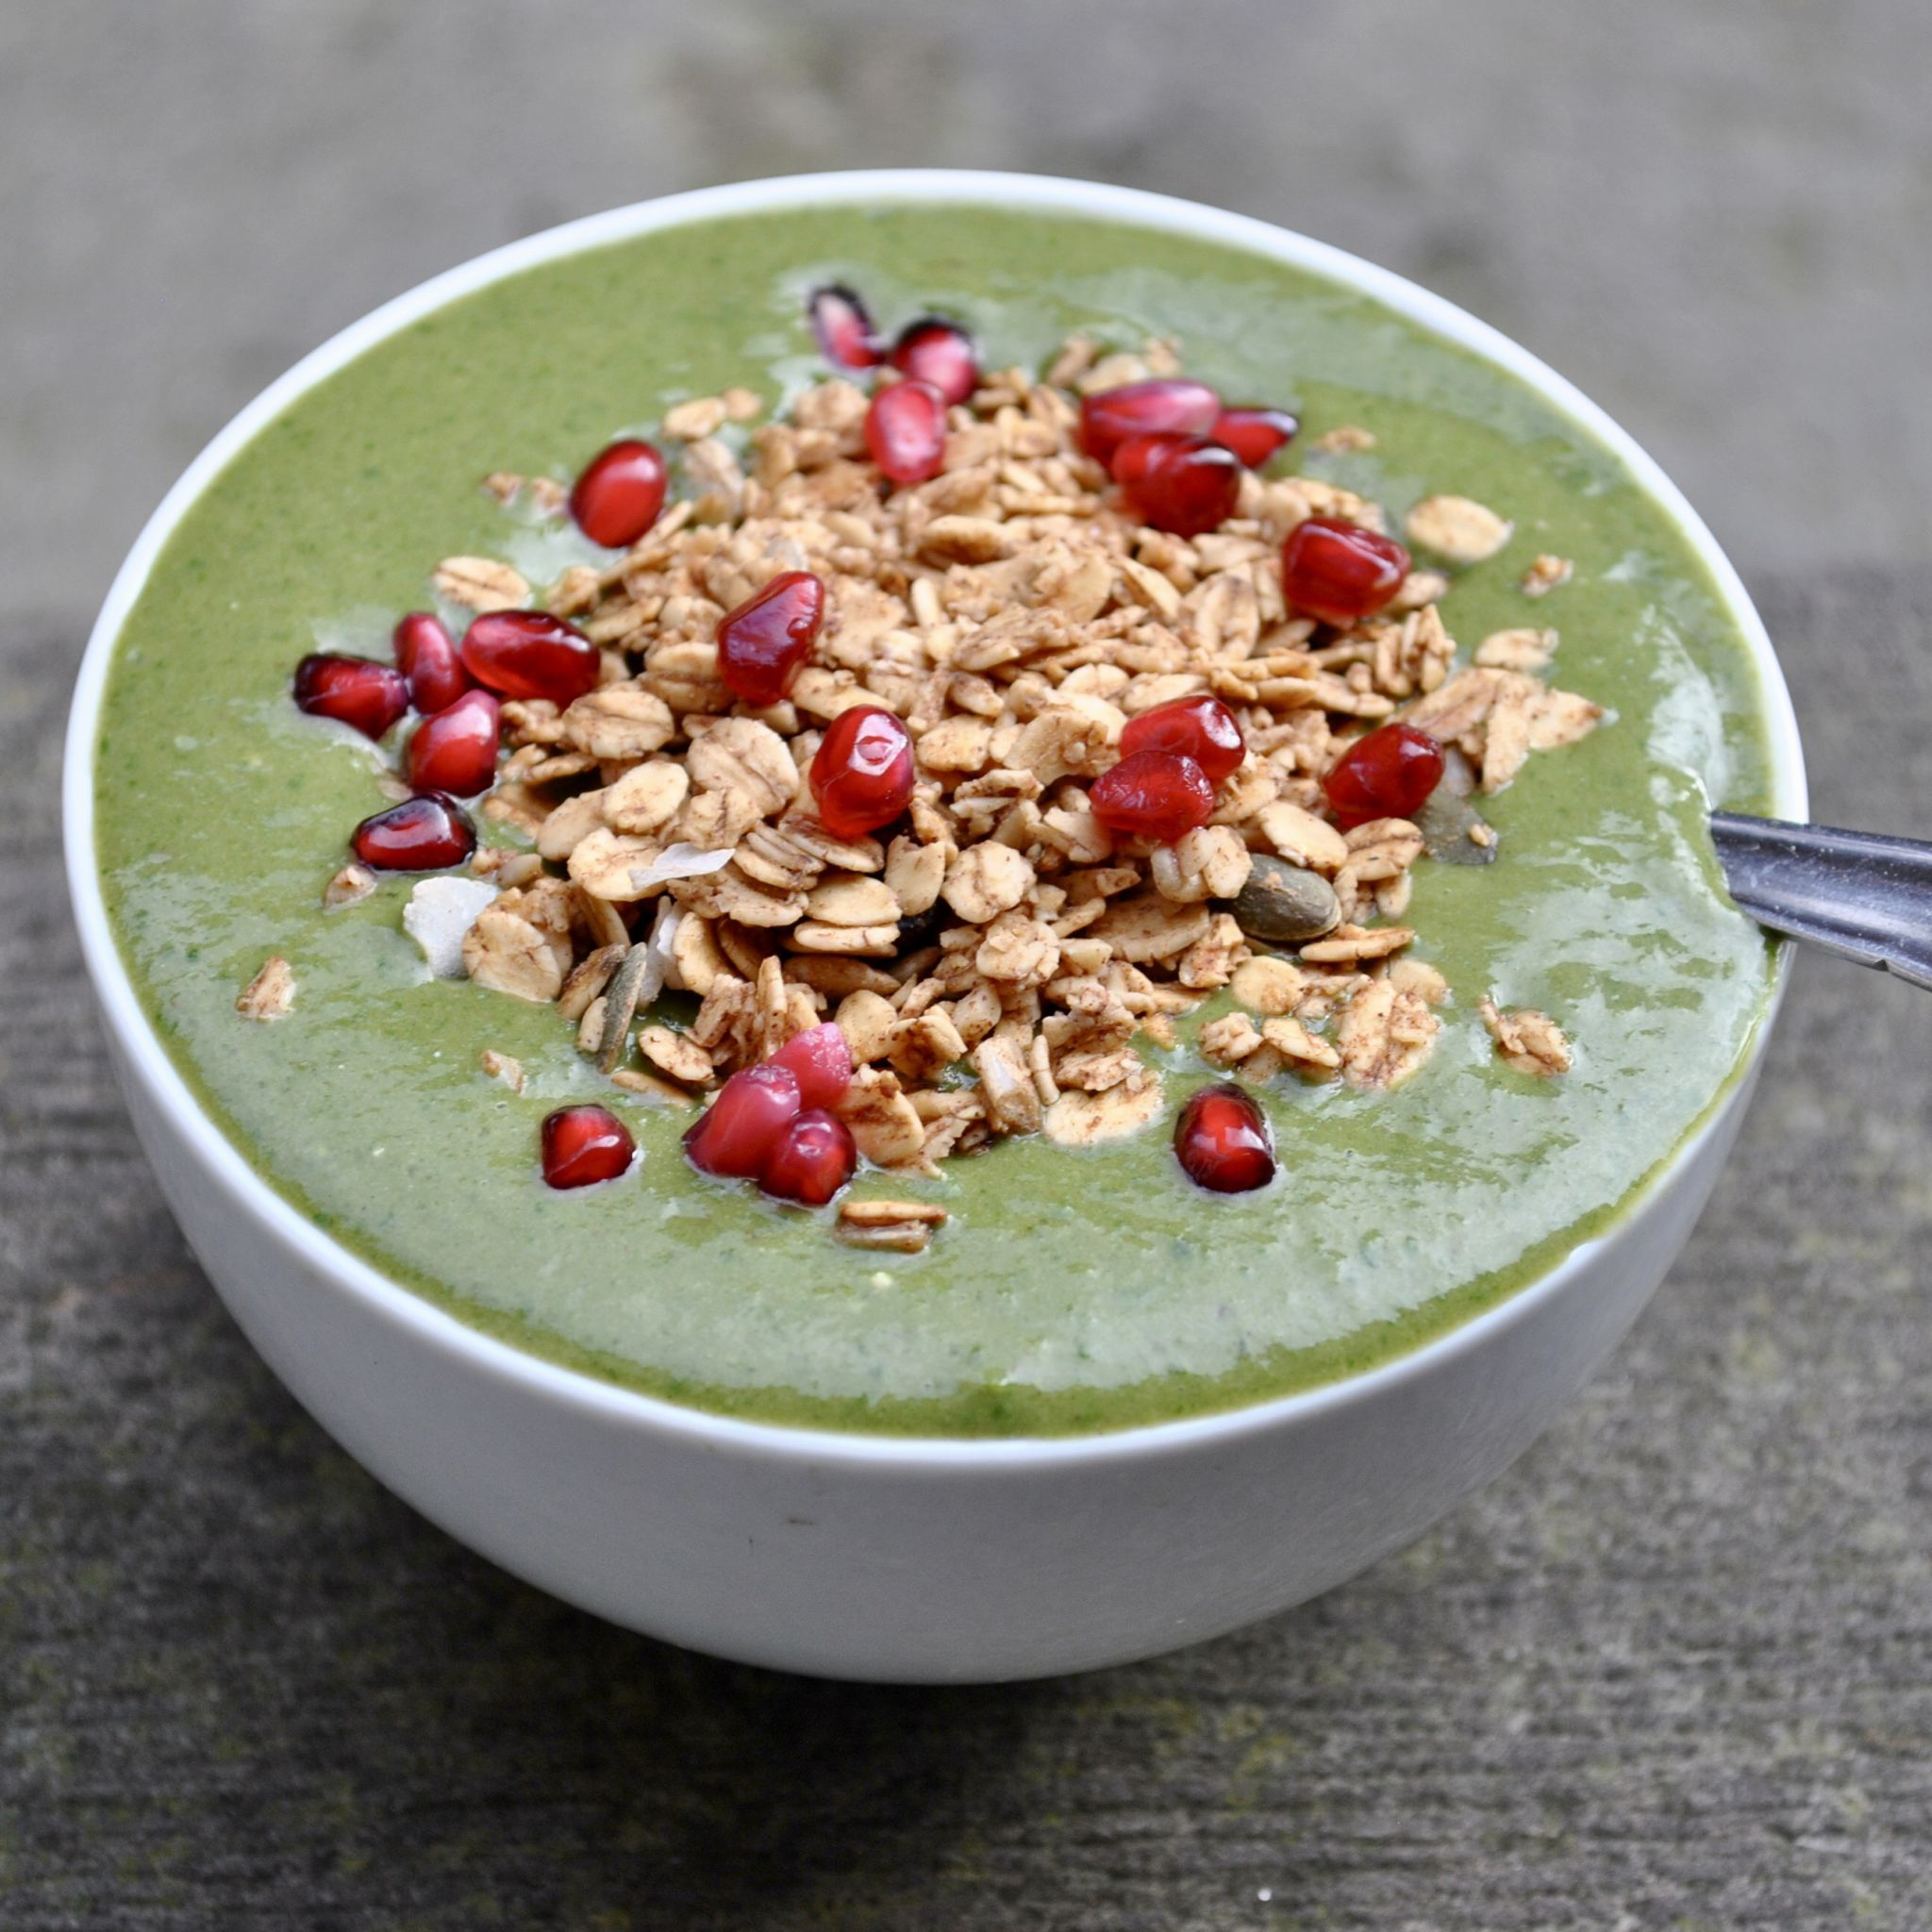 My Top 3 Green Smoothie Recipes